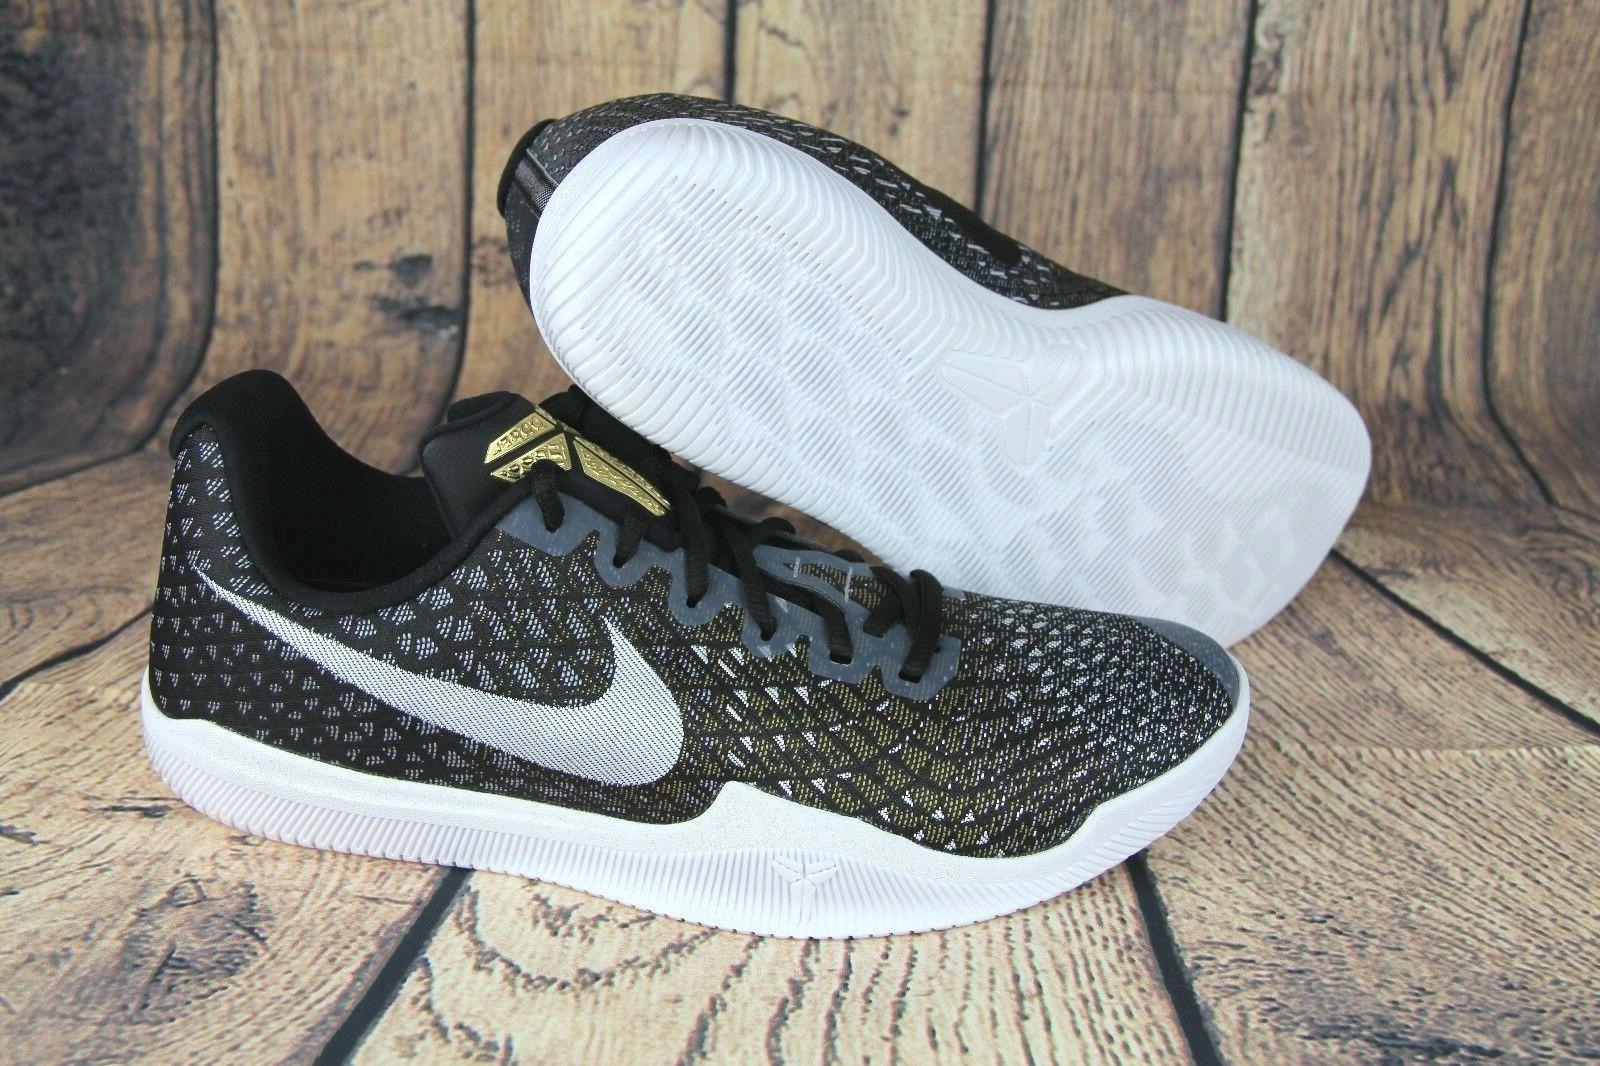 Nike Mens Shoes Black/Gold/Grey 852473-010